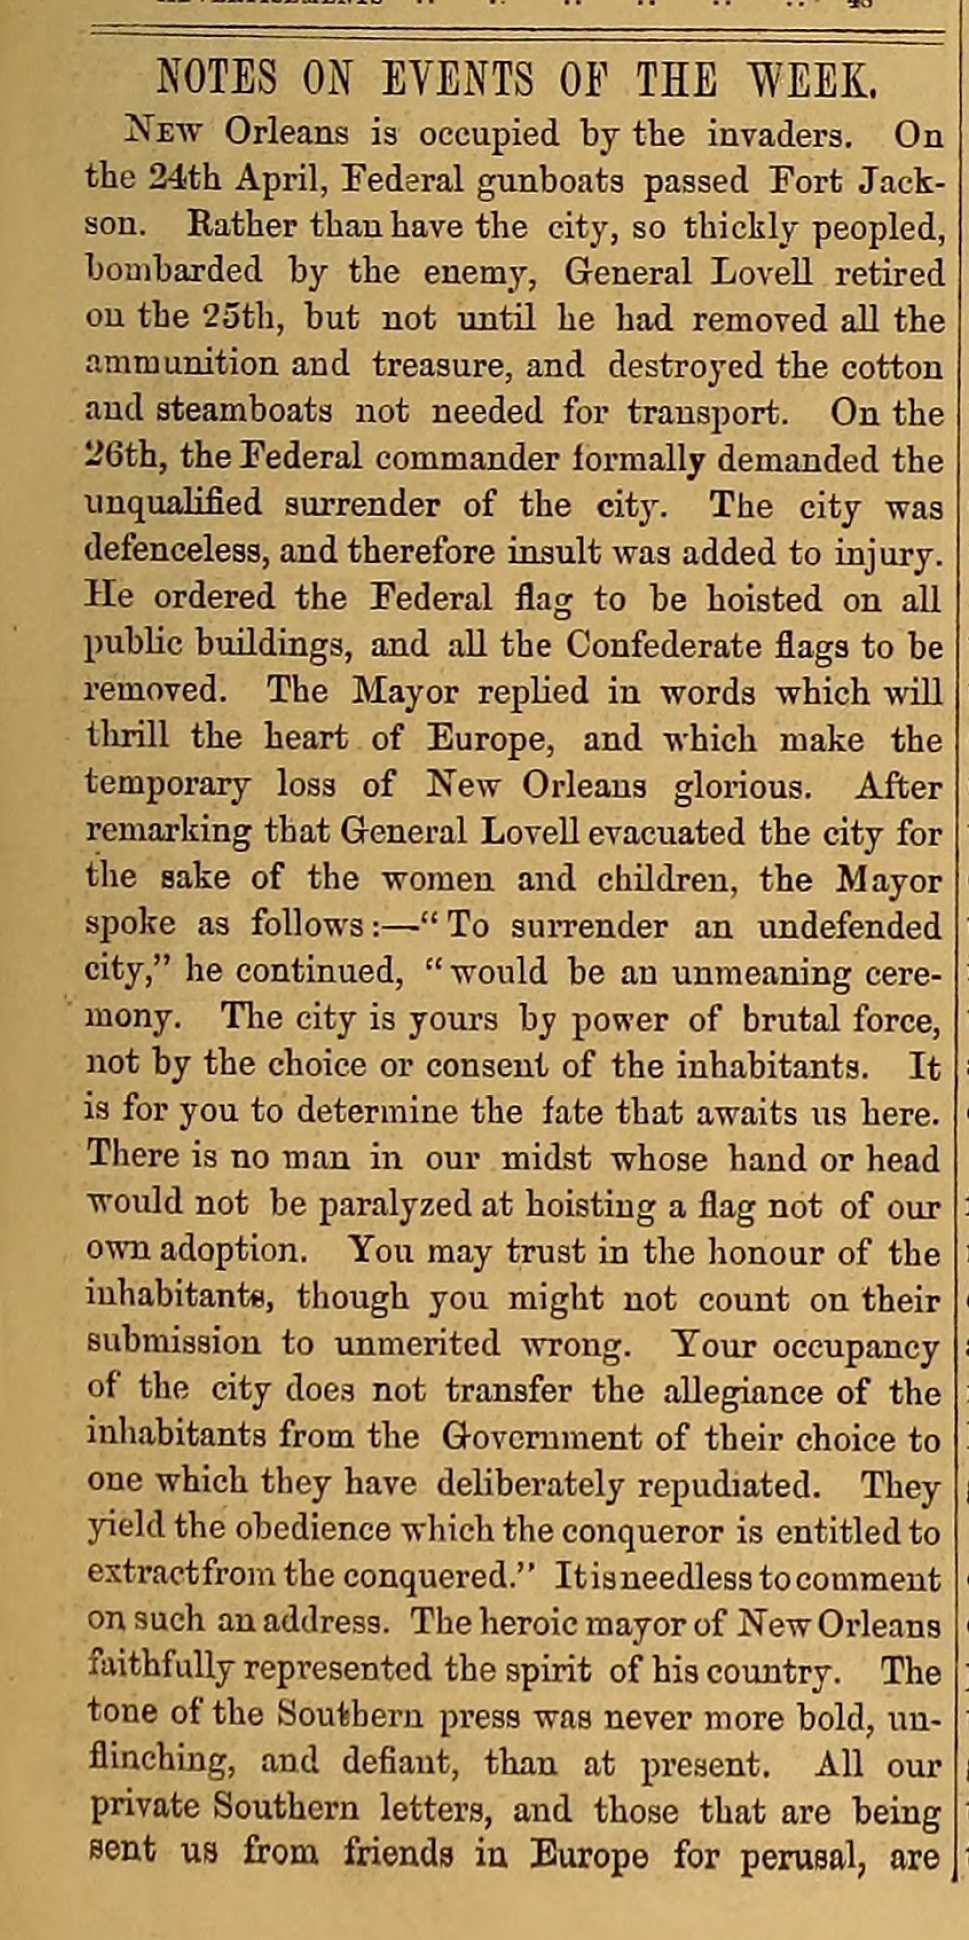 Article on the Union capture of New Orleans from the May 15, 1862 issue of The Index